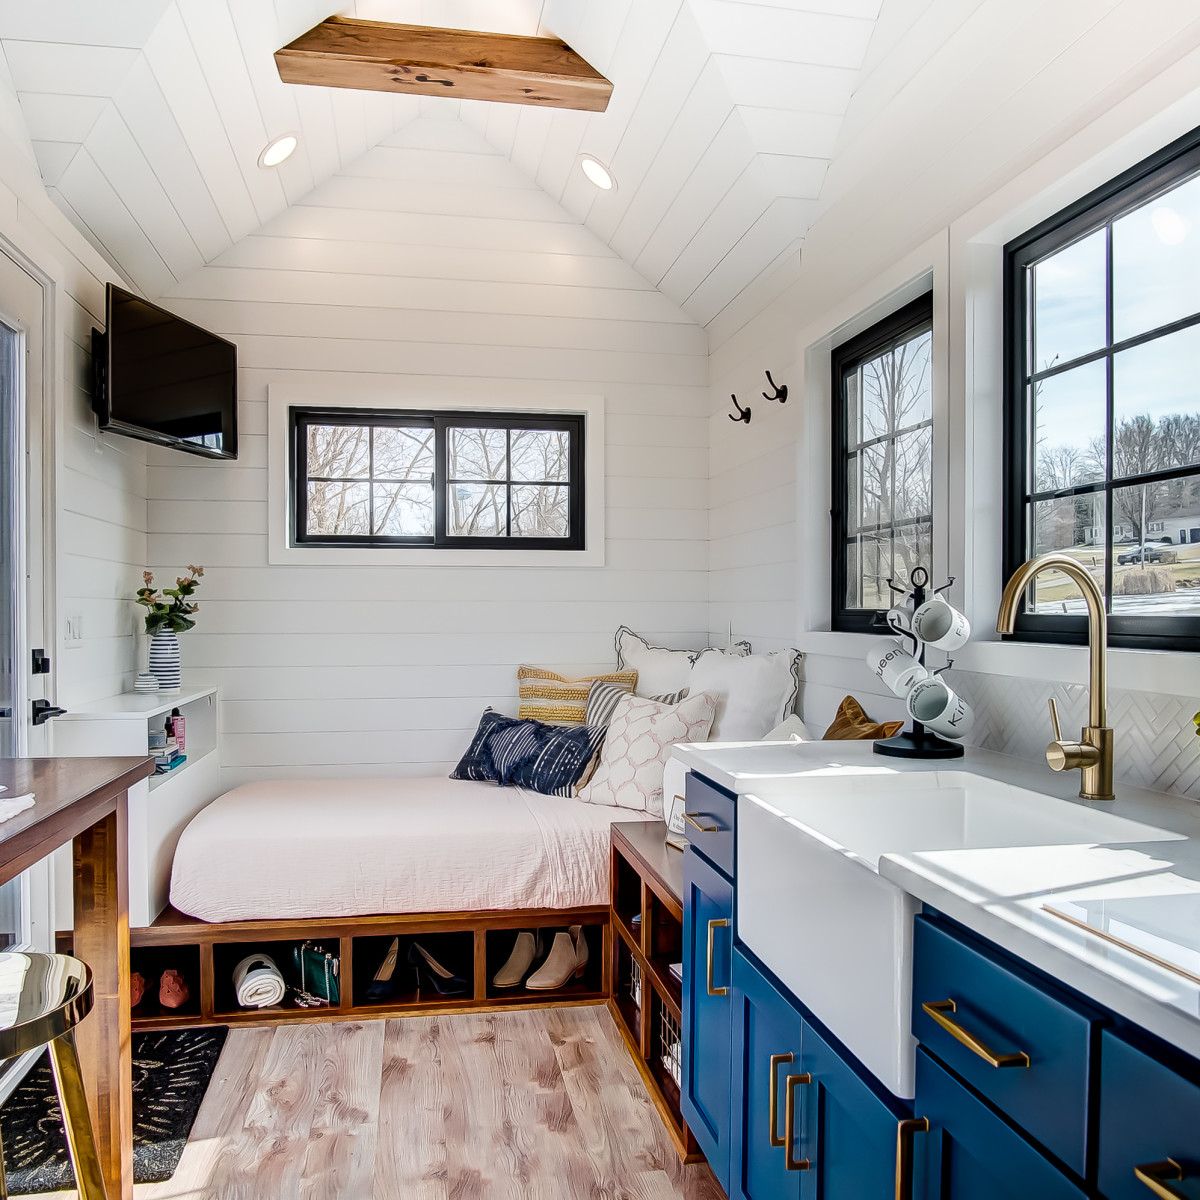 Country Bump Kin Boutique Home: Tiny-house Boutique Sets Up Shop In Dallas During Cross